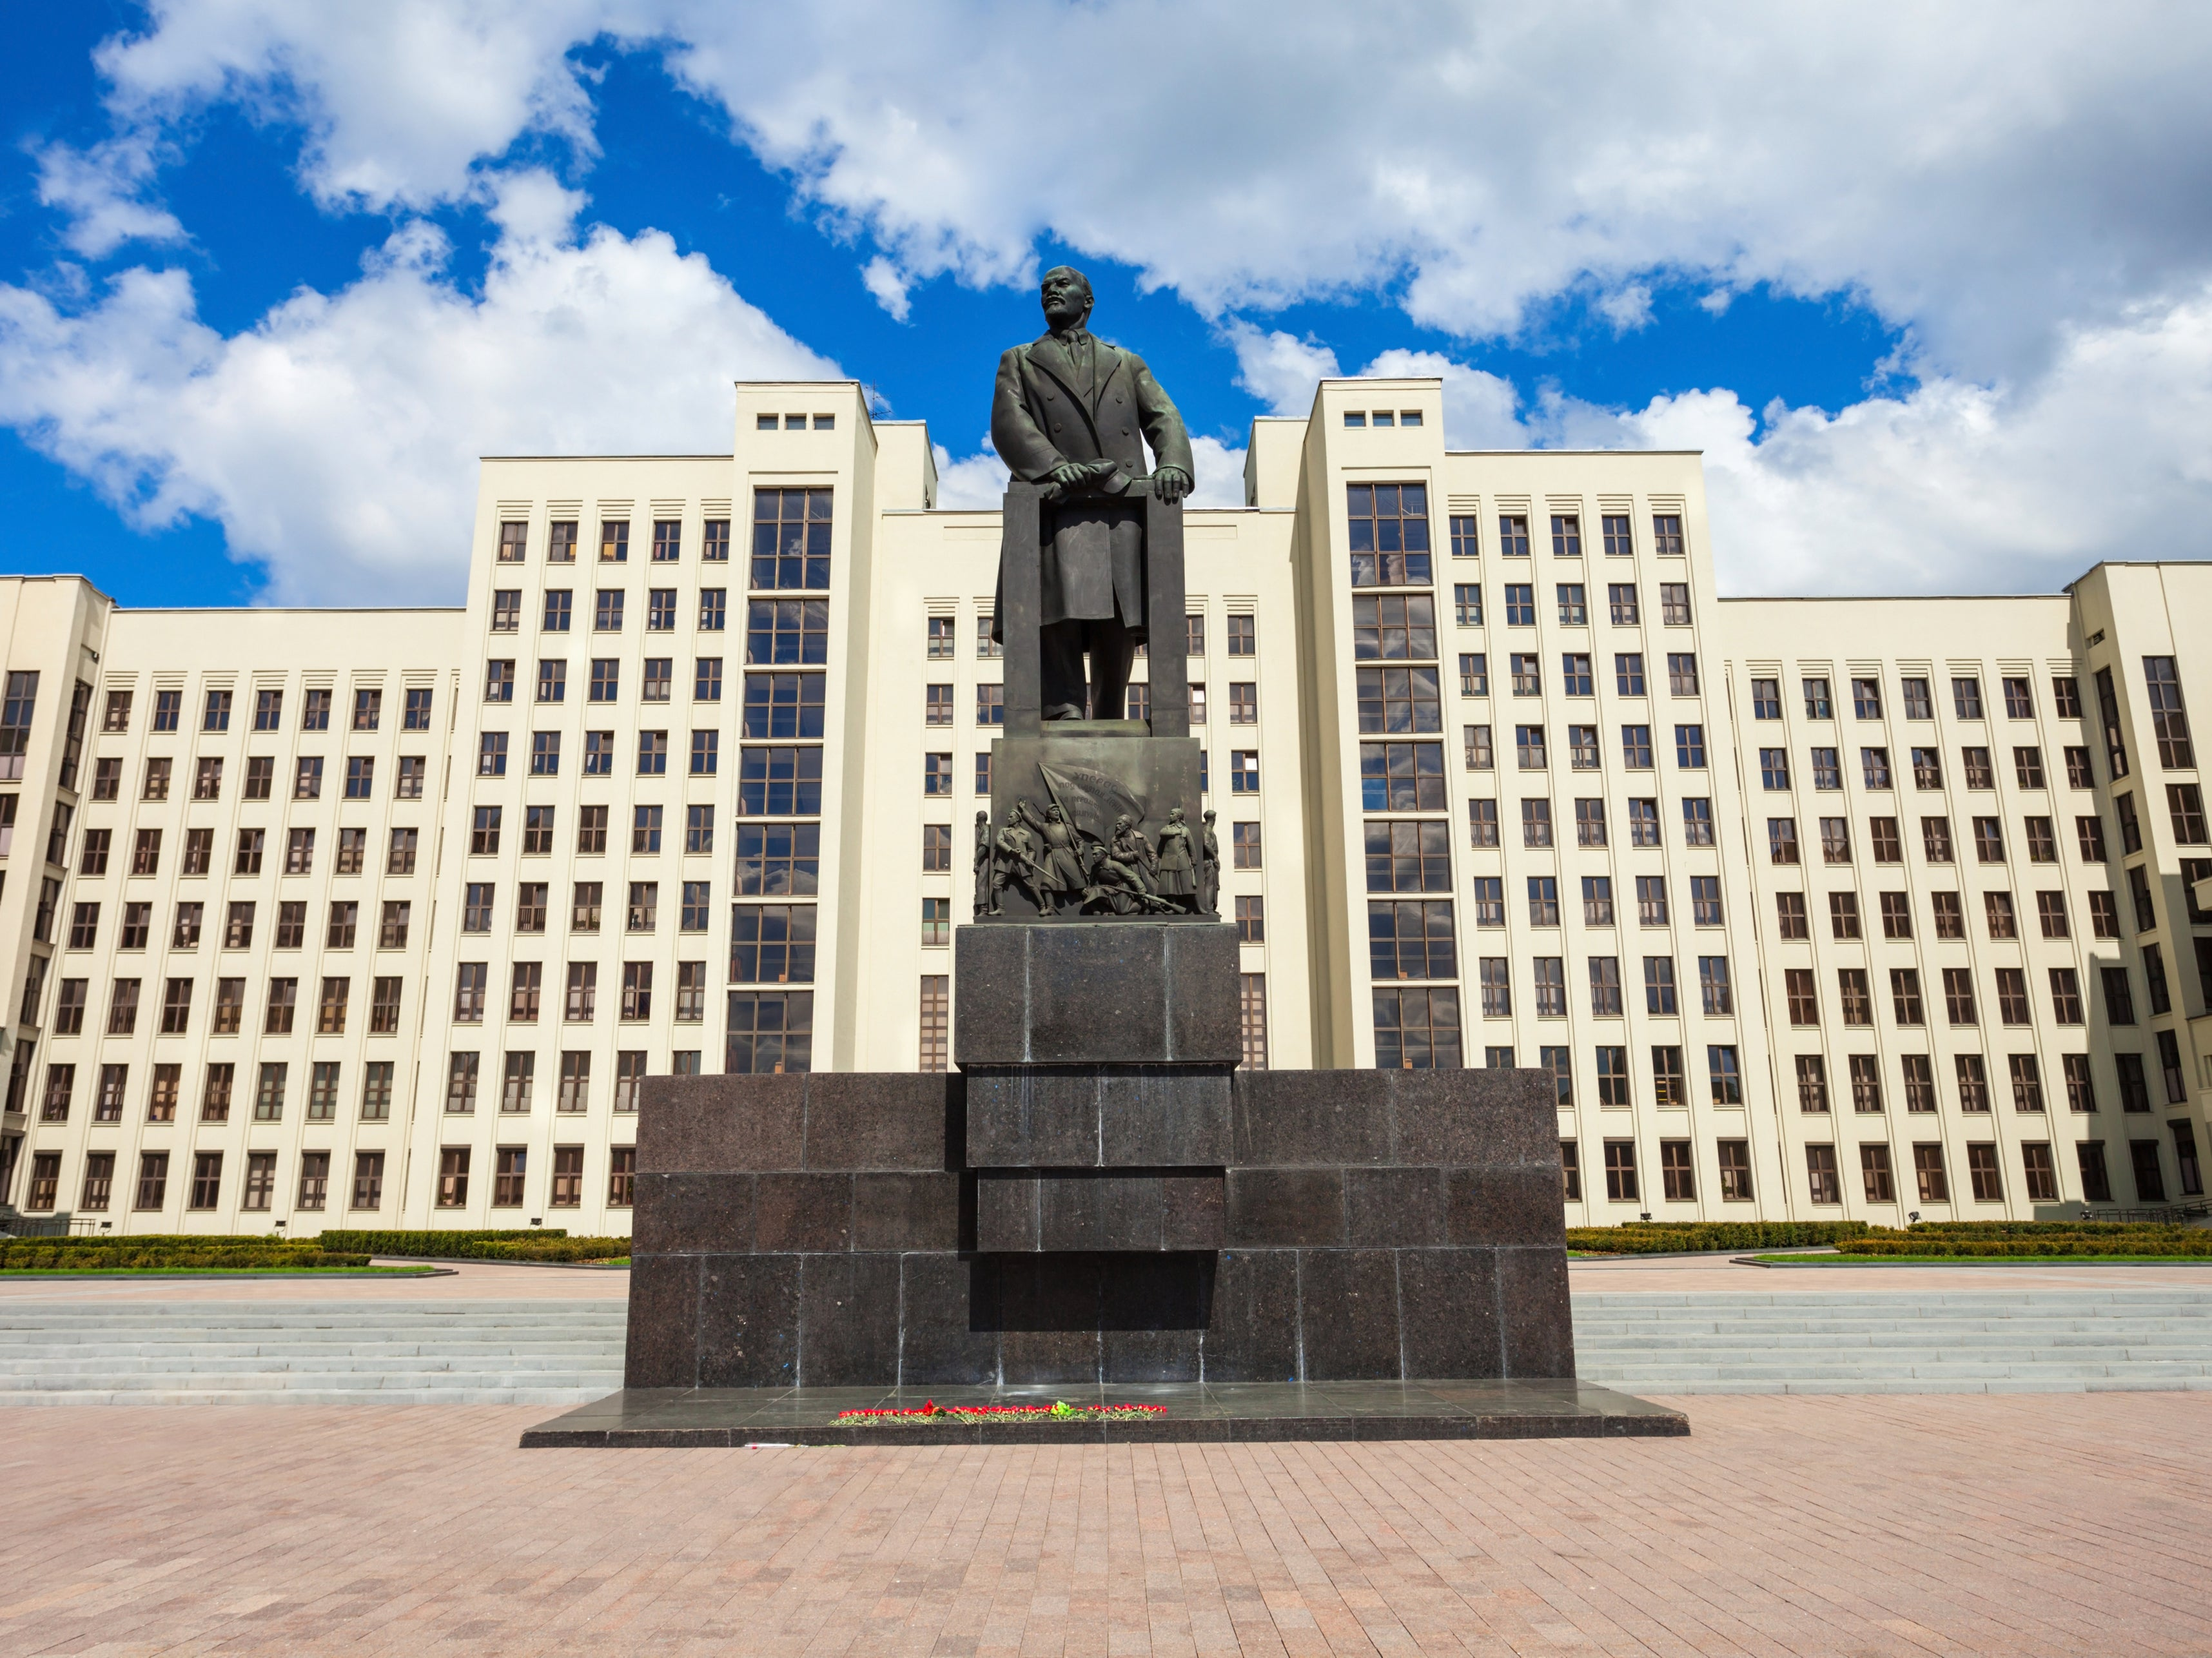 Man sets himself on fire outside government HQ in Belarus - independent